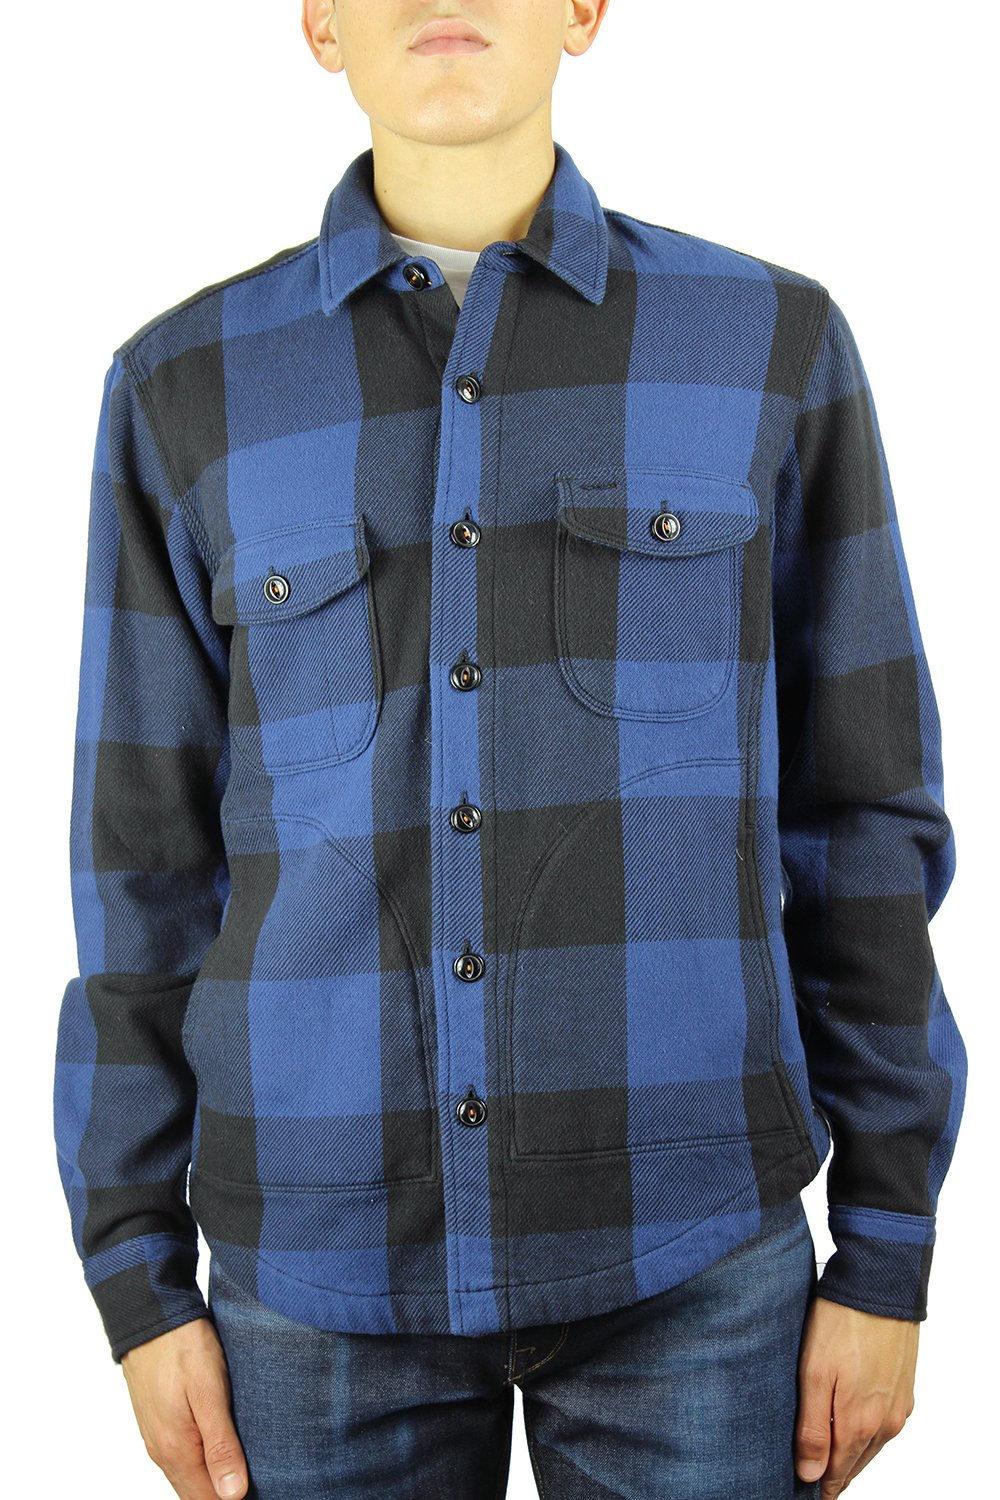 HIROSHI KATO Shirts Jacket 100% Cotton Buffalo Check Blue XL